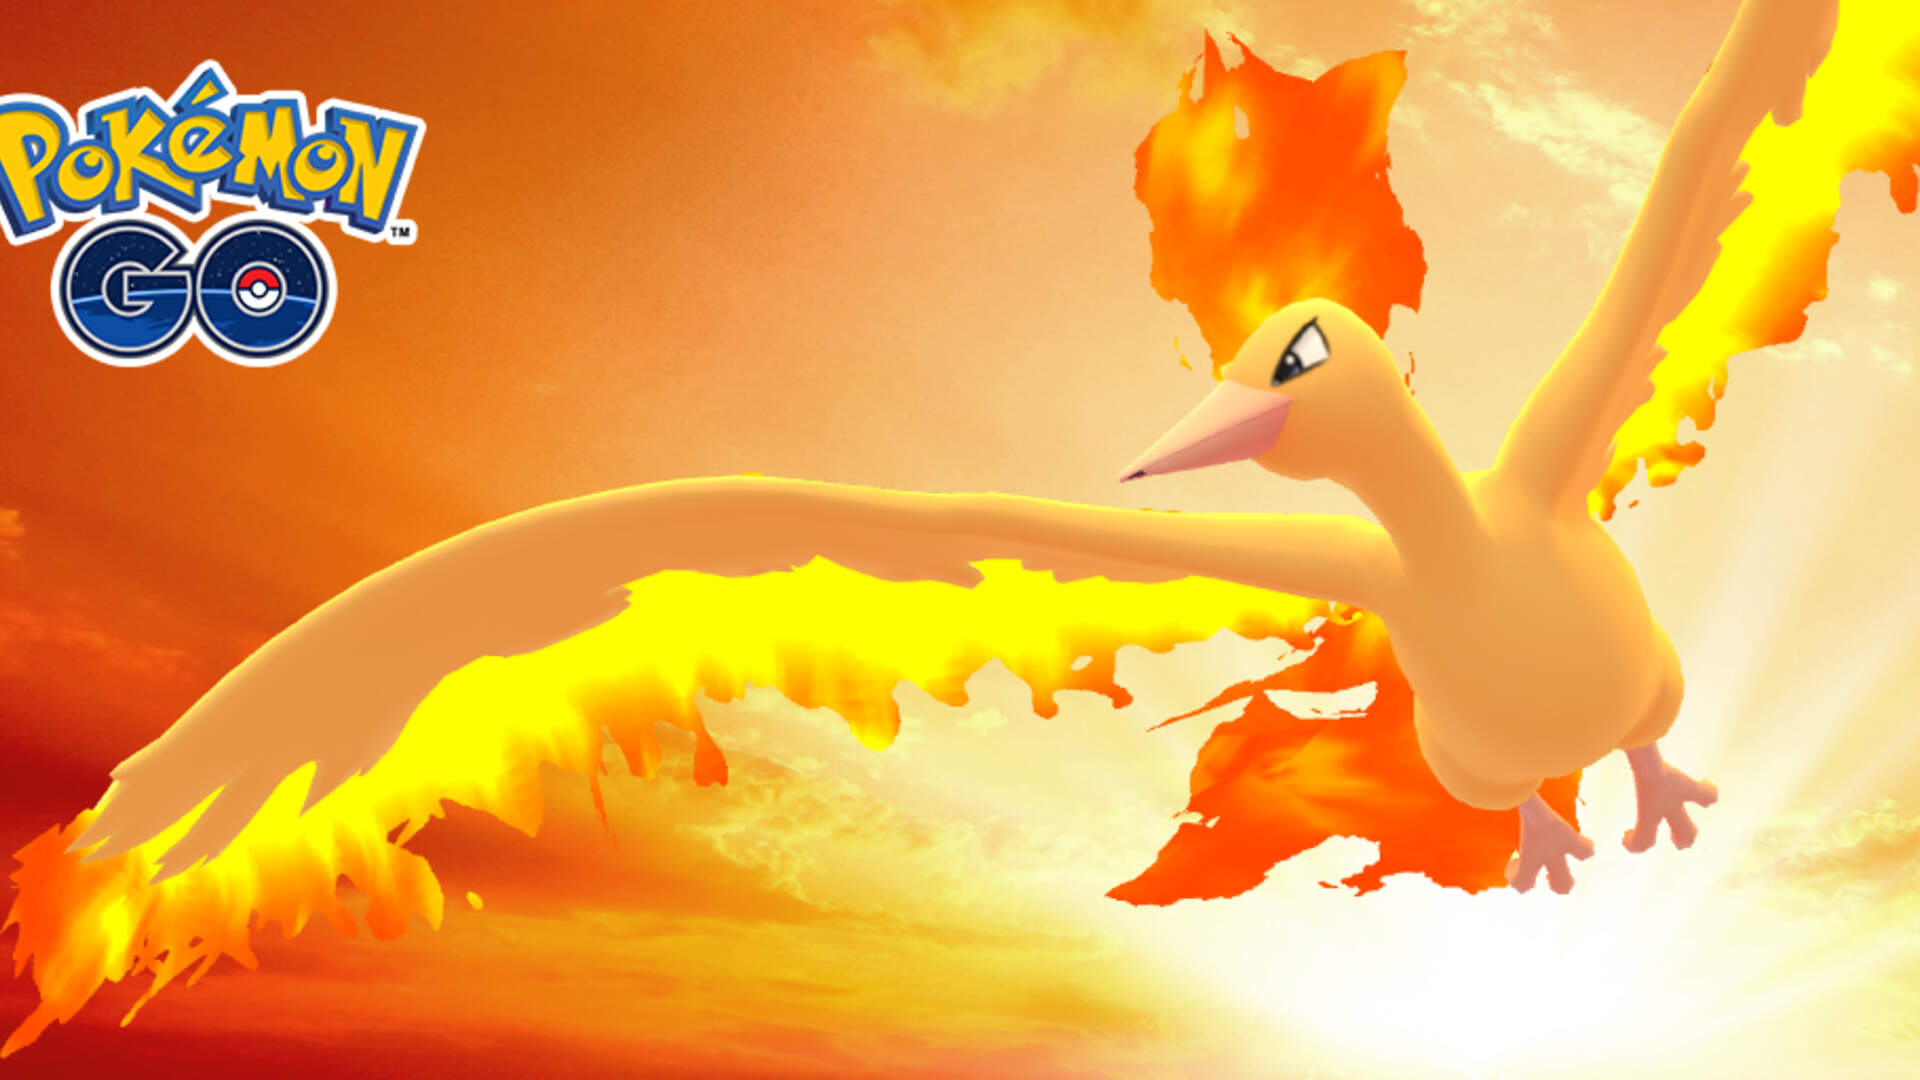 Pokemon GO Moltres Day Adds Sky Attack Moltres on September 8